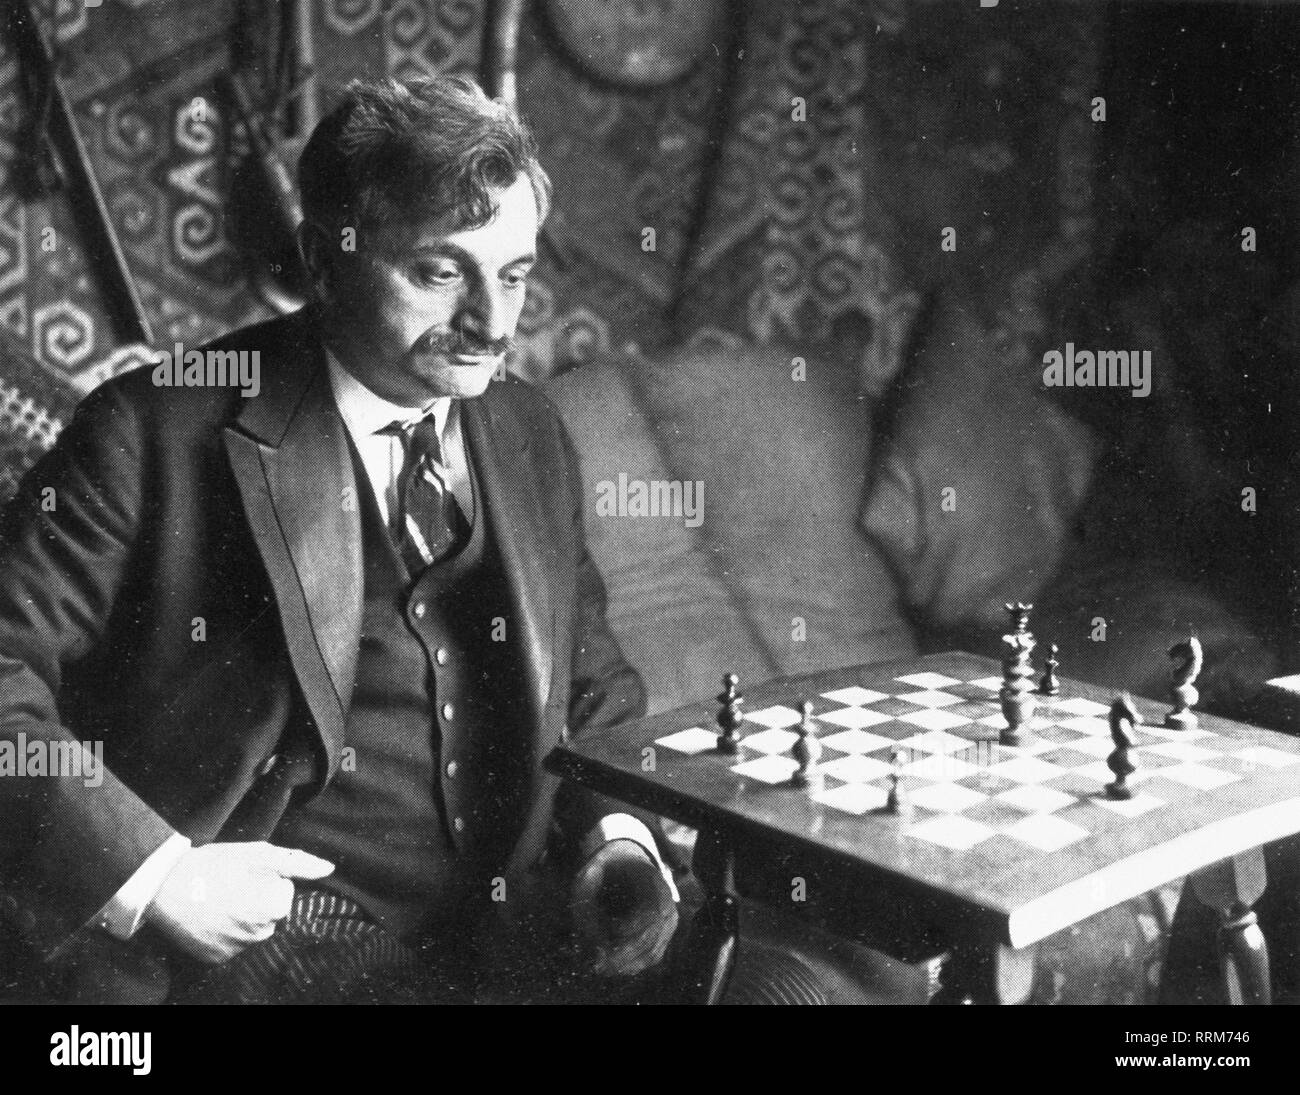 Lasker, Emanuel, 24.12.1868 - 13.1.1941, German chess player, half-length, circa 1930, Additional-Rights-Clearance-Info-Not-Available - Stock Image